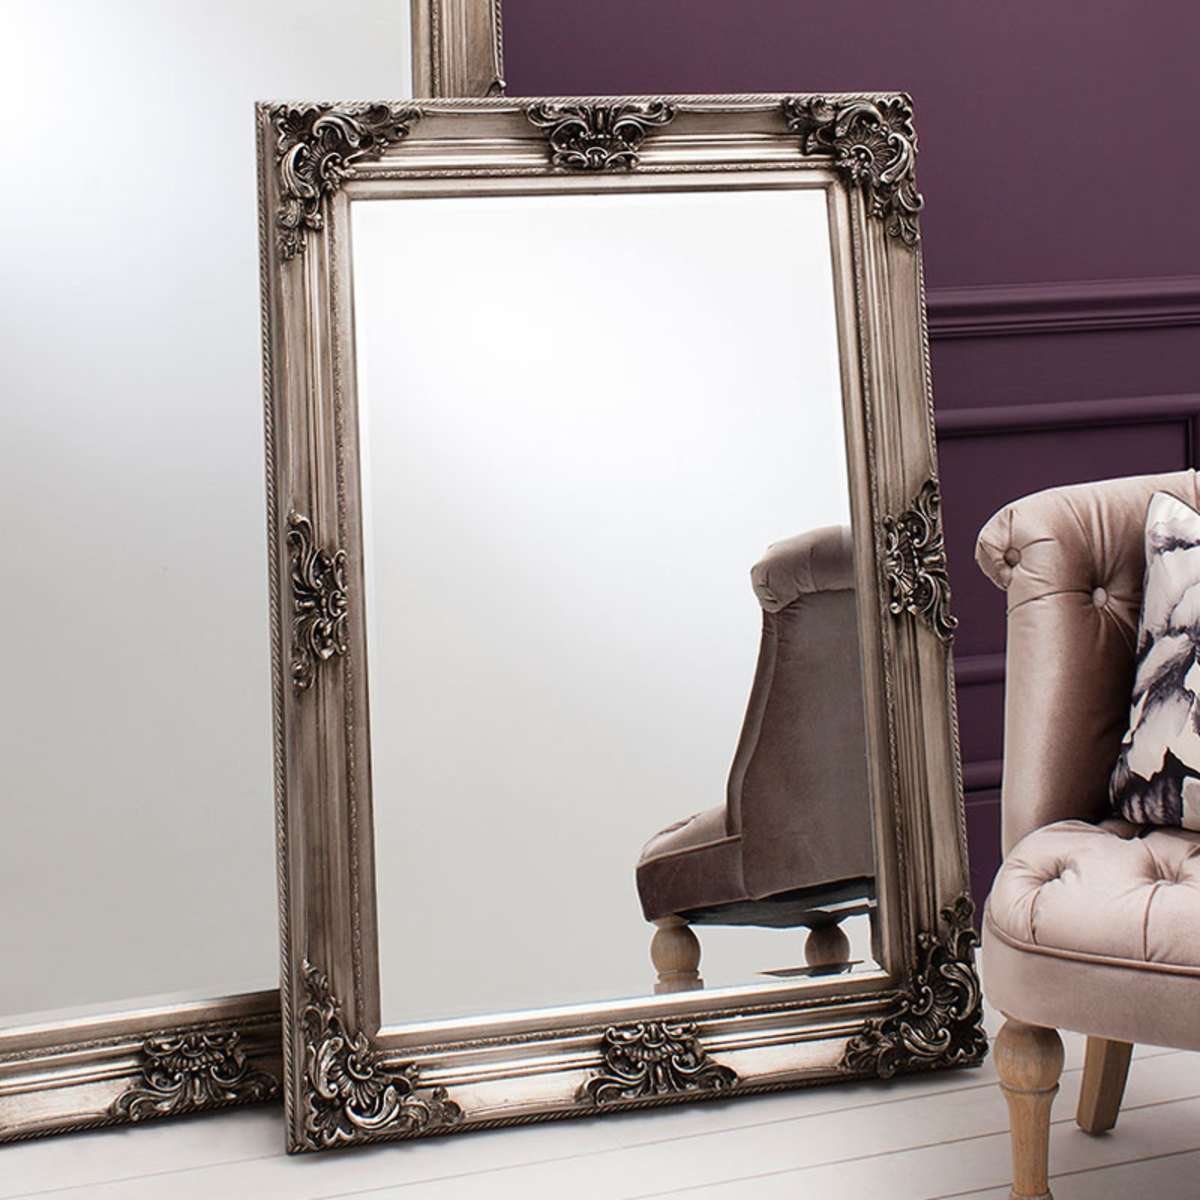 Gallery Bronham Mirror in 2 SizesGallery Bronham Mirror in 2 Sizes